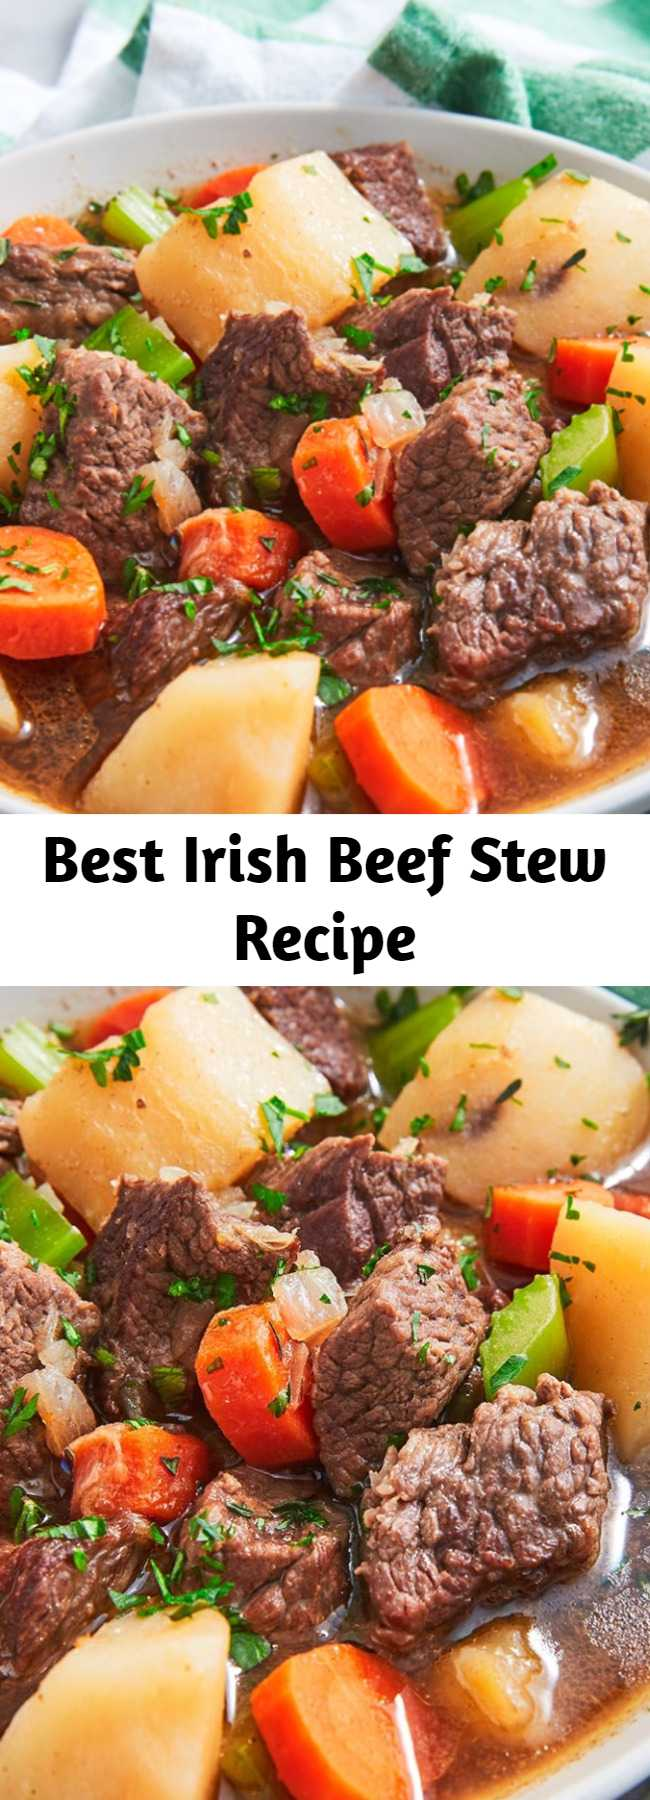 Best Irish Beef Stew Recipe - Traditionally, an Irish stew (aka Guinness Stew) is made with lamb, which you can totally do. We opted for beef chuck for simplicity and familiarity, but we think the Guinness and potatoes still qualify the stew as Irish. Whatever cut of meat you choose, this stew is absolutely delicious. Not too heavy, but still extremely filling.